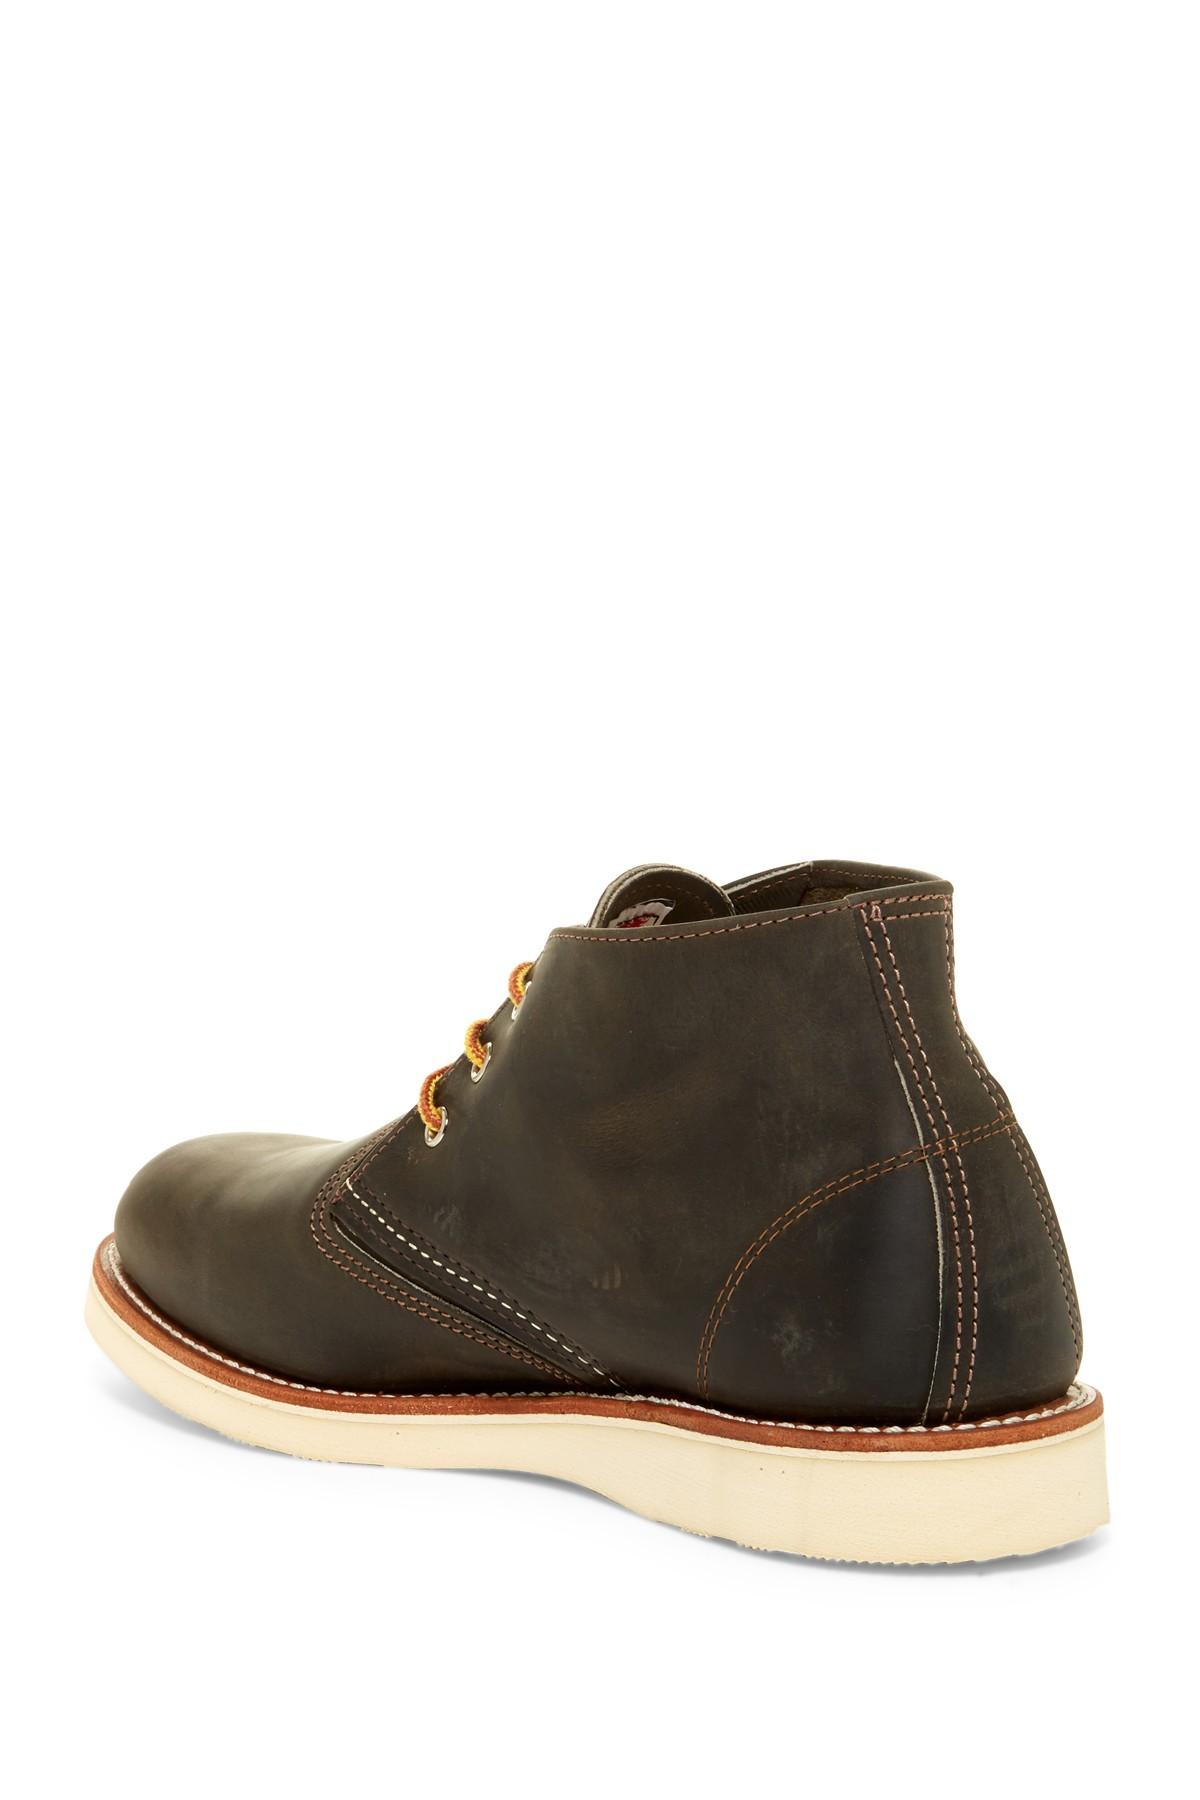 Red Wing Leather Work Chukka Boot